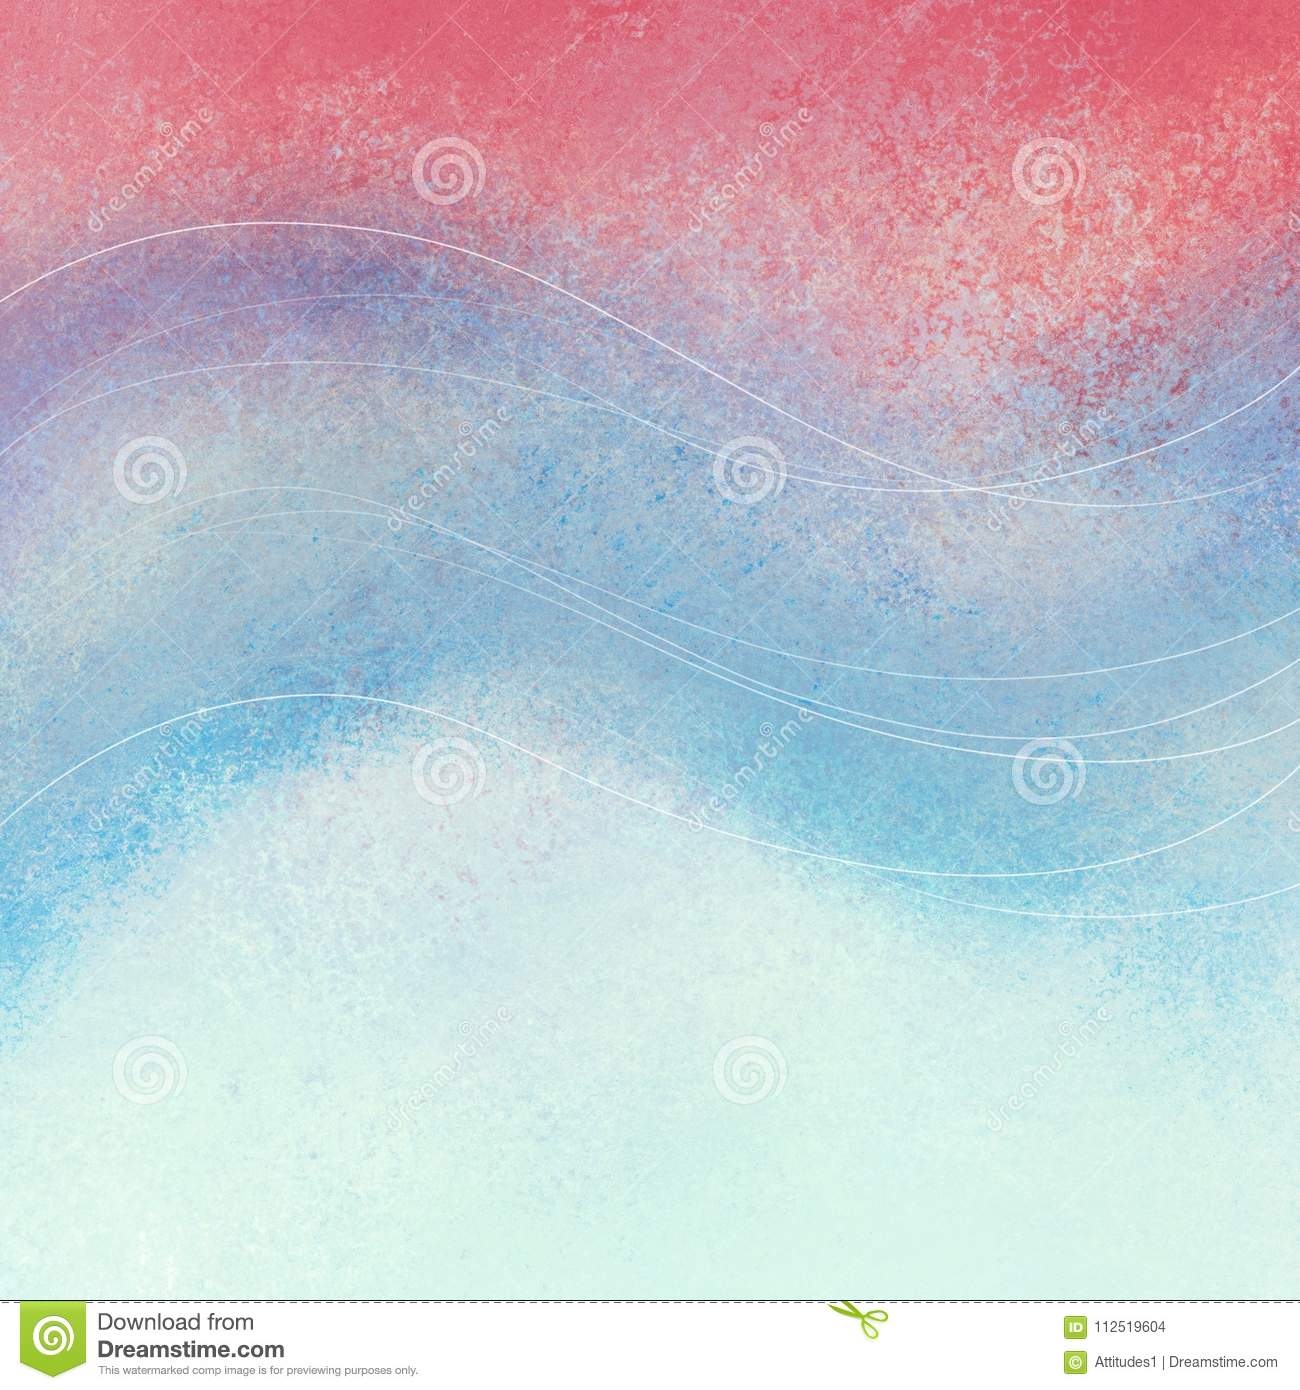 Faded Red White And Blue Background With Curved Wavy Lines Design